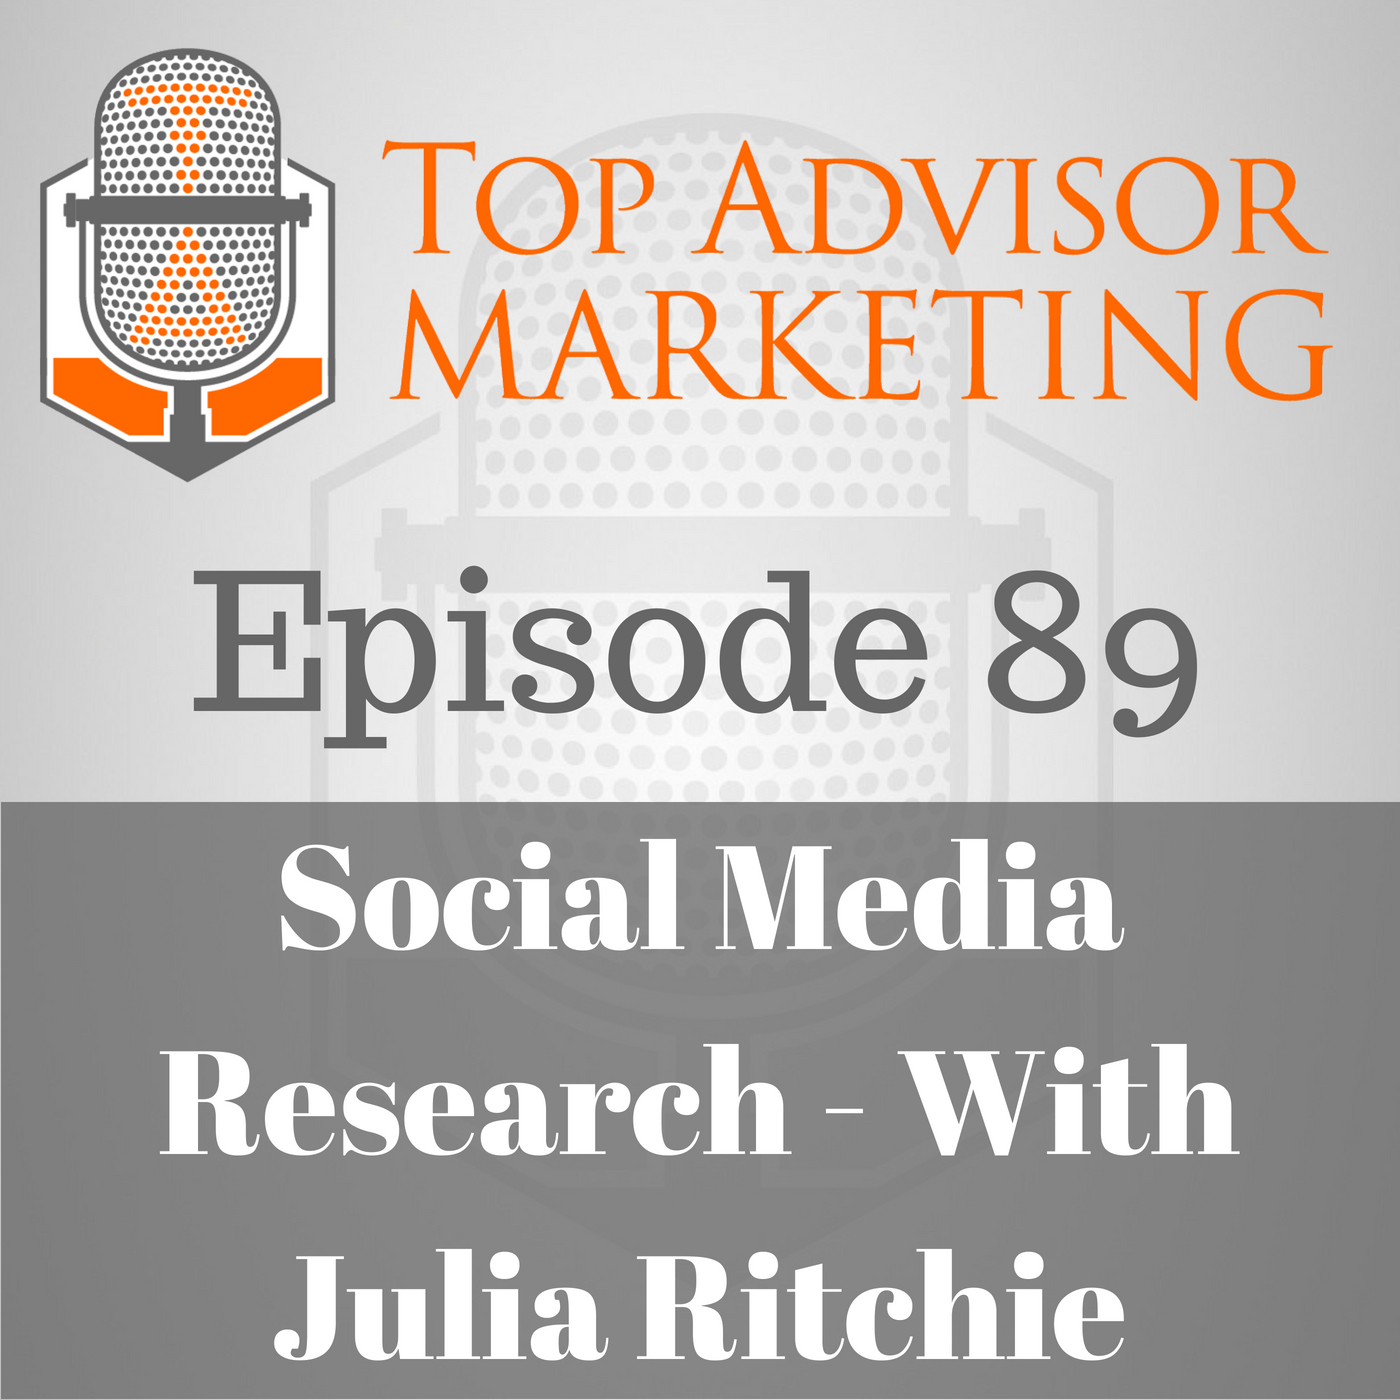 Episode 89 - Social Media Research With Julia Ritchie